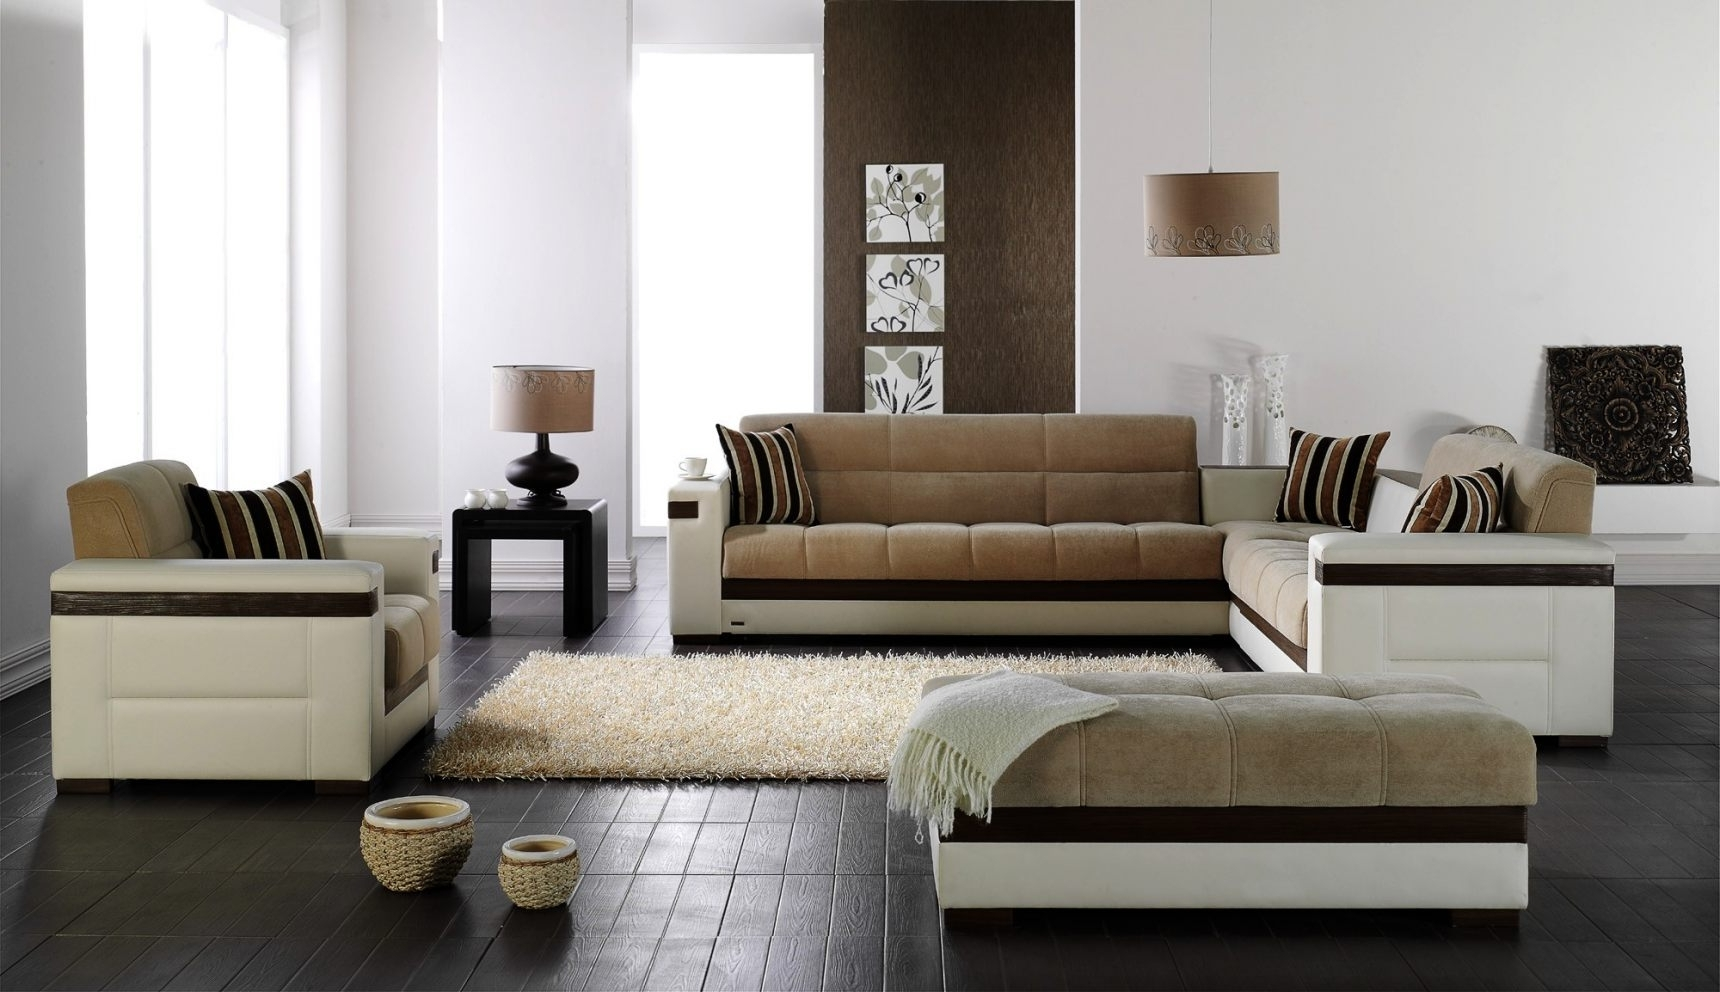 Newest Sectional Sofas From Europe Regarding European Sectional Sofas (View 16 of 20)